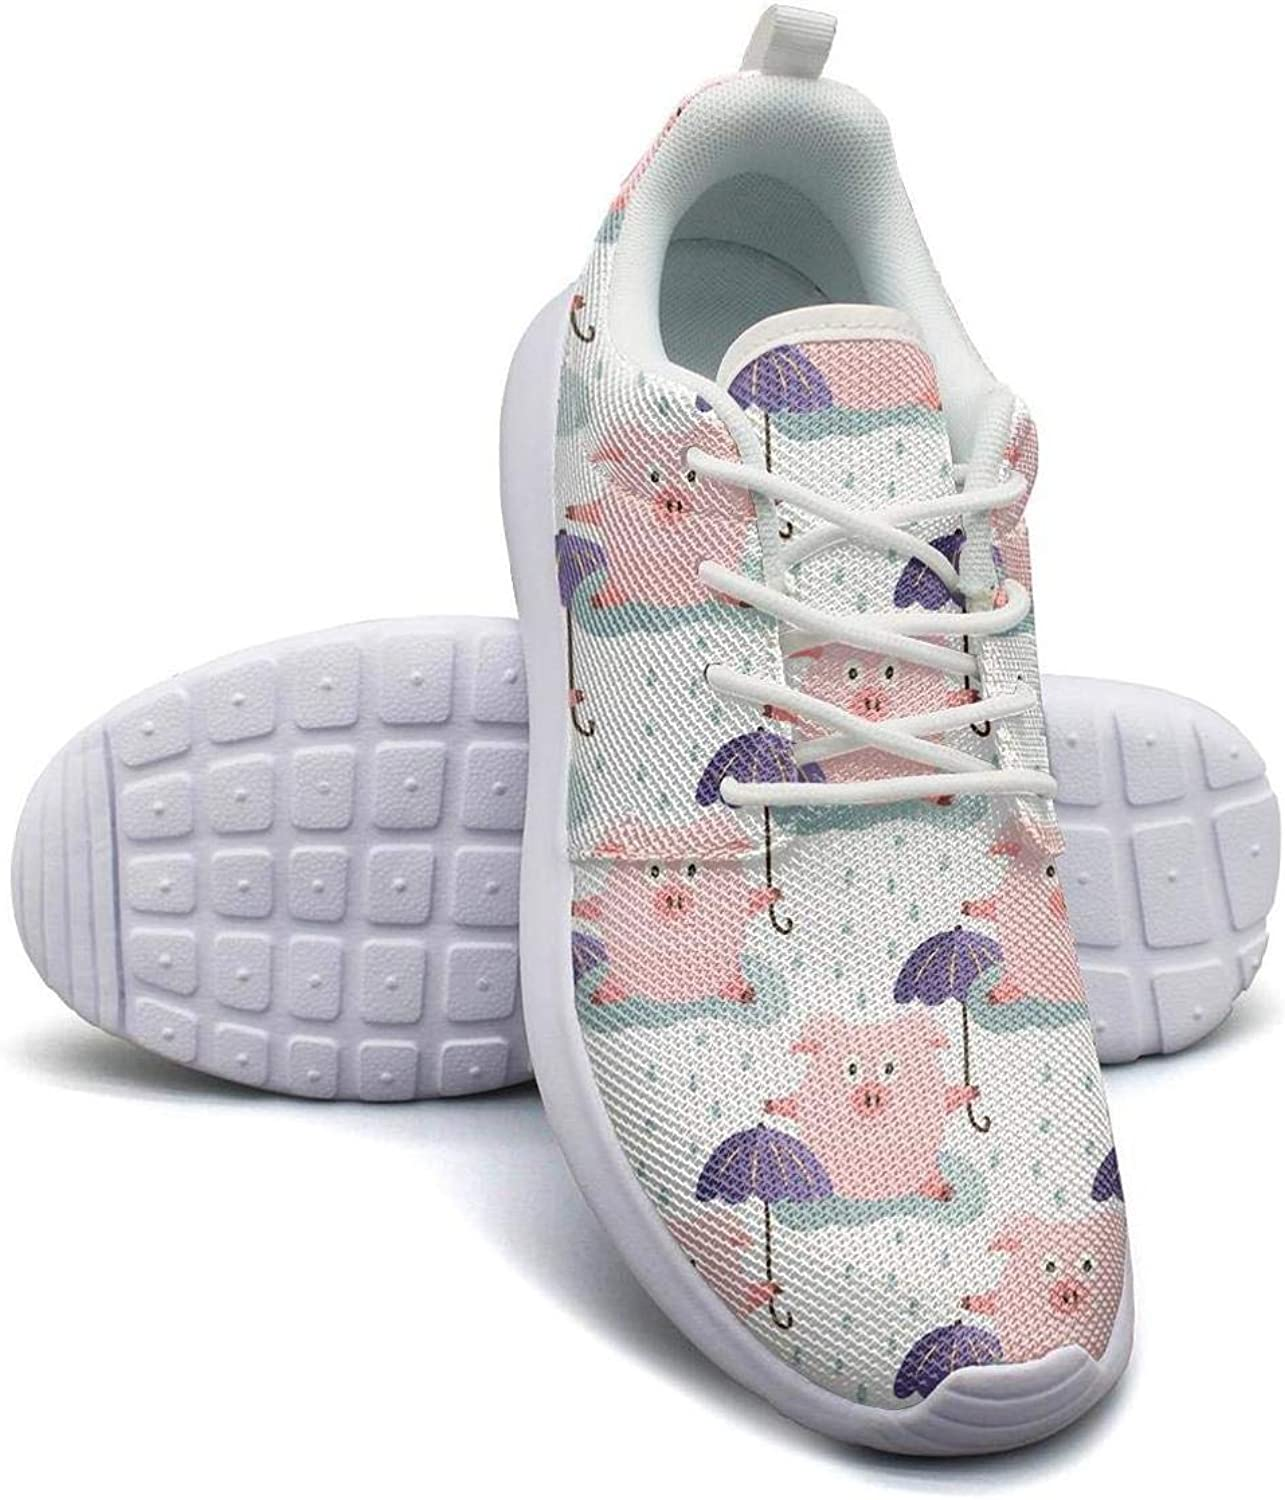 Pig Miami Mall Classic with Umbrella in The Rain Simpl Girl Shoes Casual Skateboard